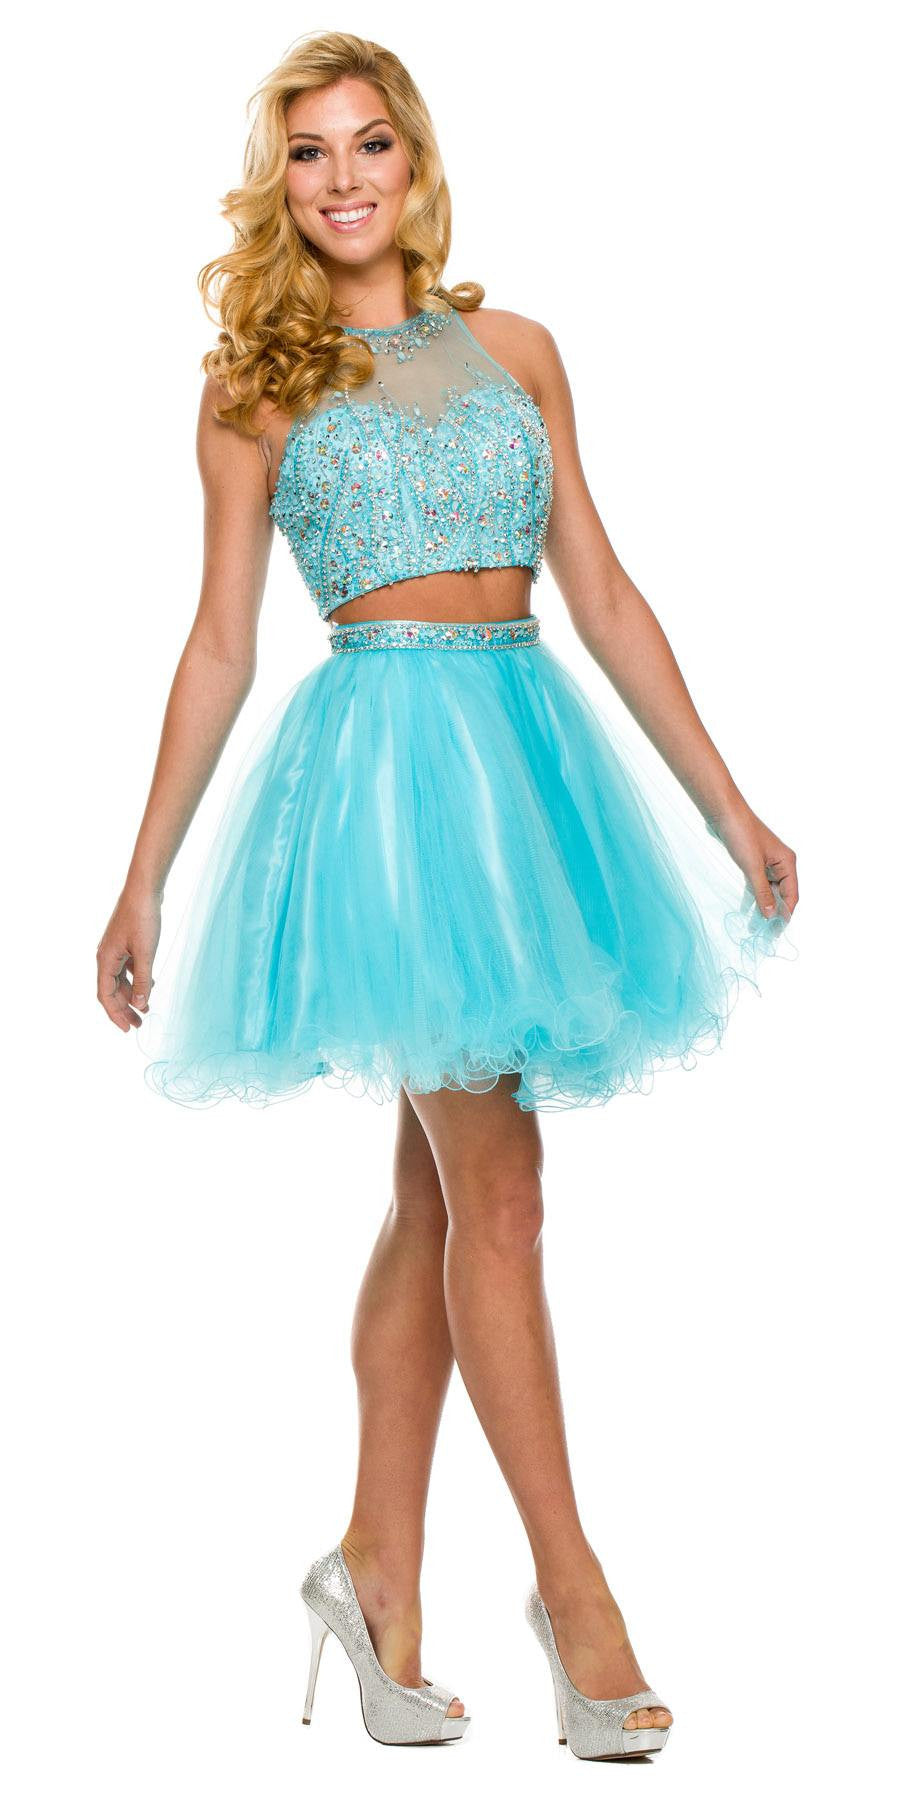 Short 2 Piece Prom Gown Fuchsia Tulle Poofy High Neck Keyhole Back ...